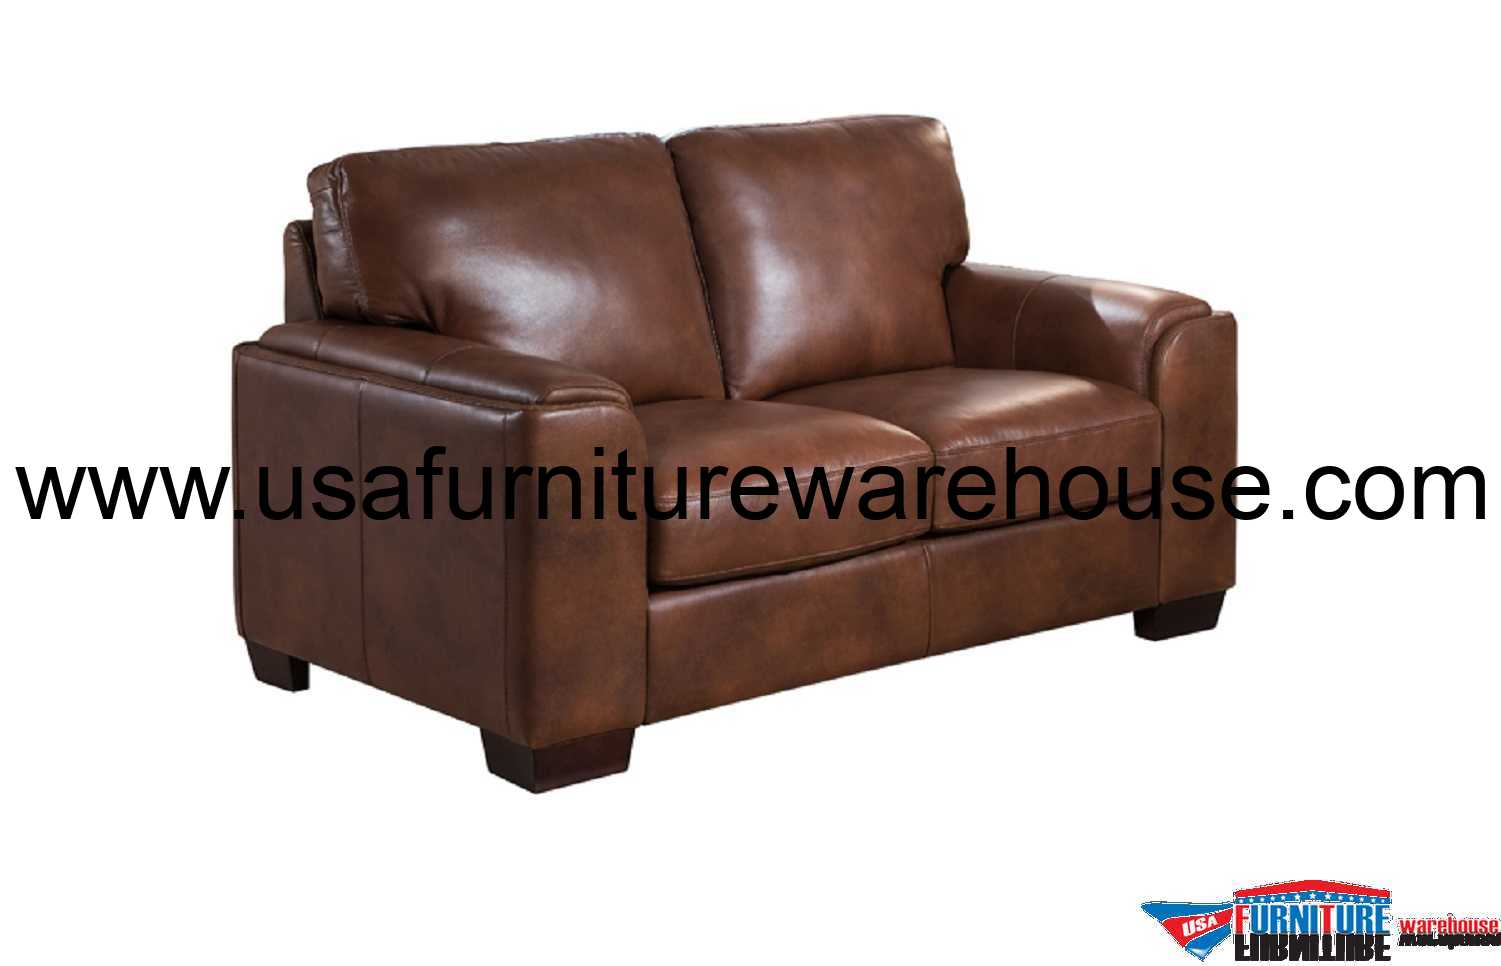 Suzanne full top grain brown leather loveseat Chocolate loveseat